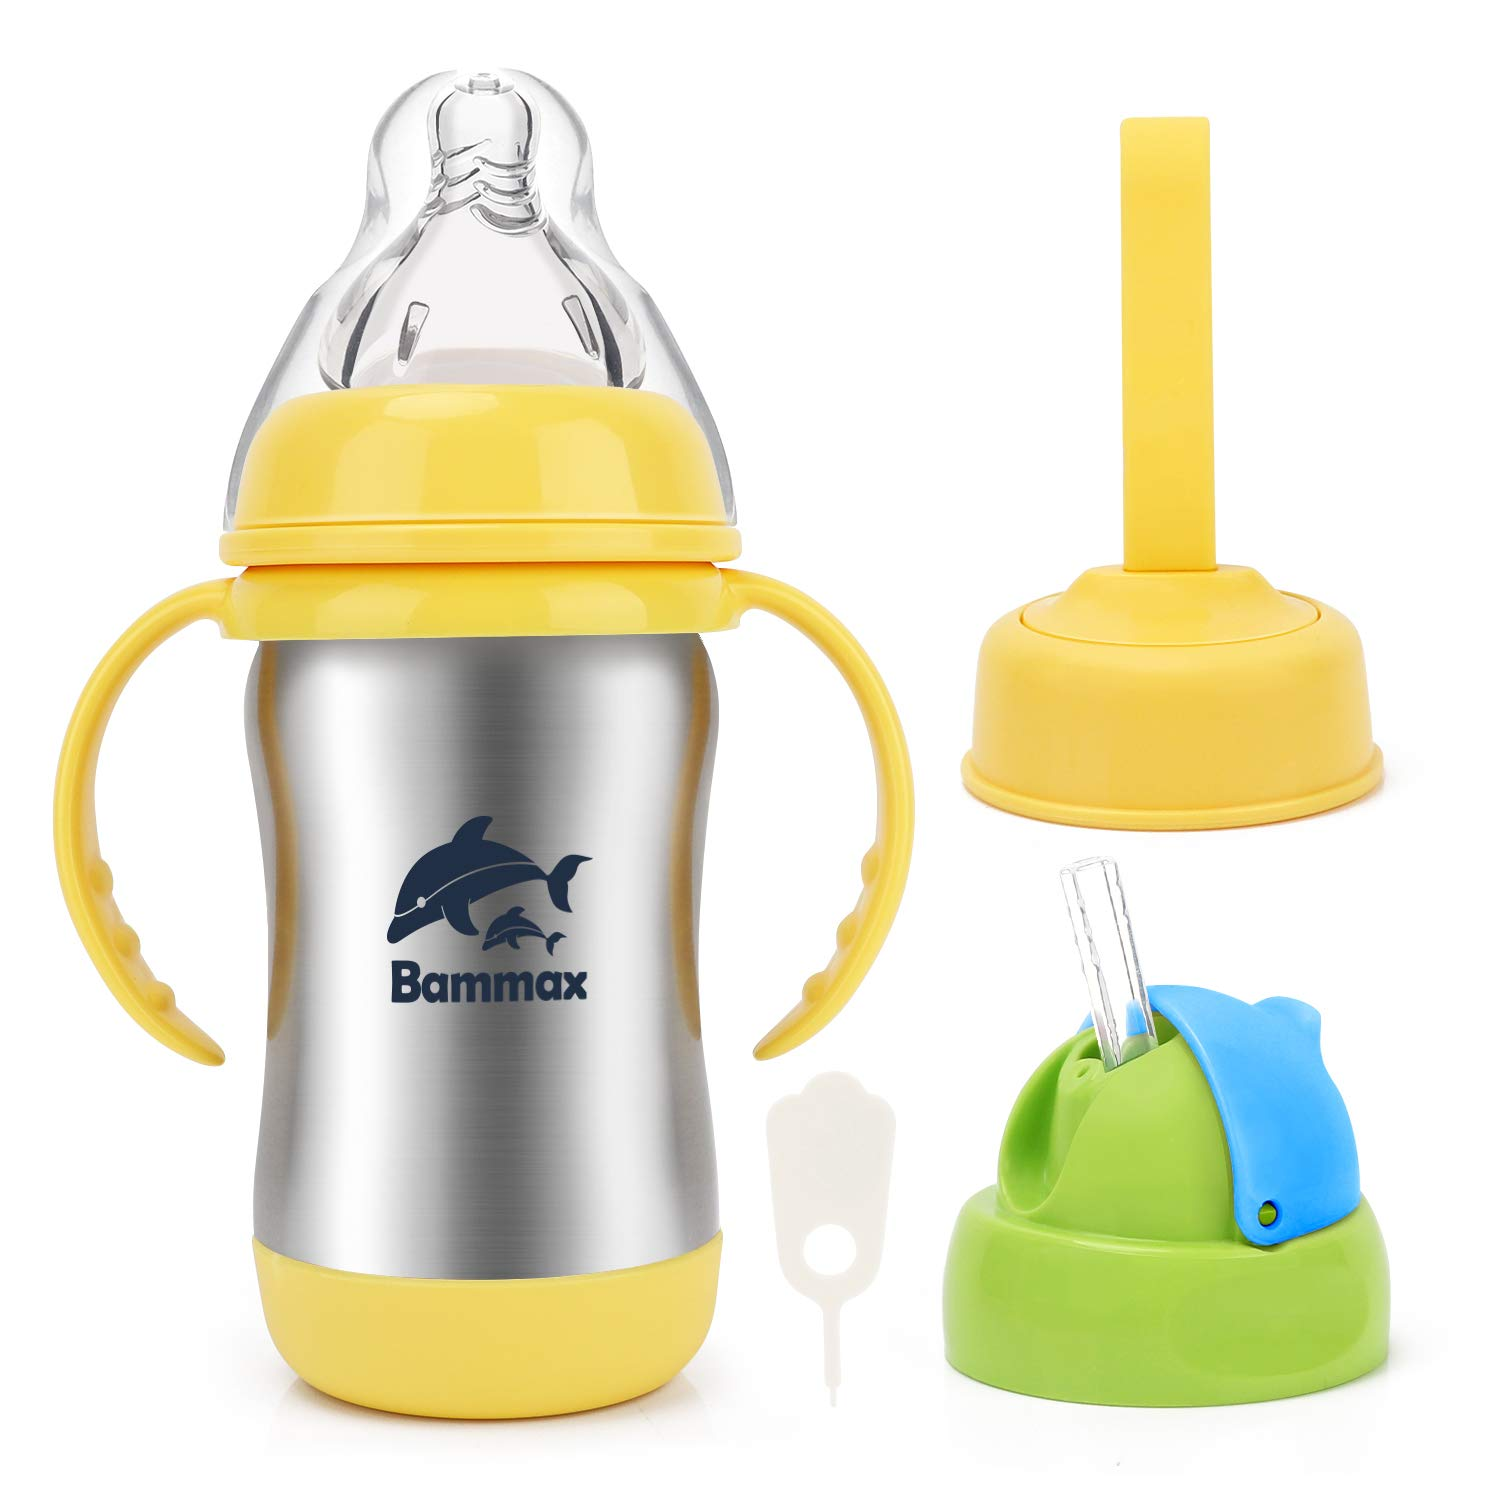 Bammax Baby Sippy Cup, 3 in 1 Multi-Function Baby Kids Water Cup, Stainless Steel Non-Toxic Non-Spill Infant Bottle with Silicone Straw, Heat Preservation by Bammax